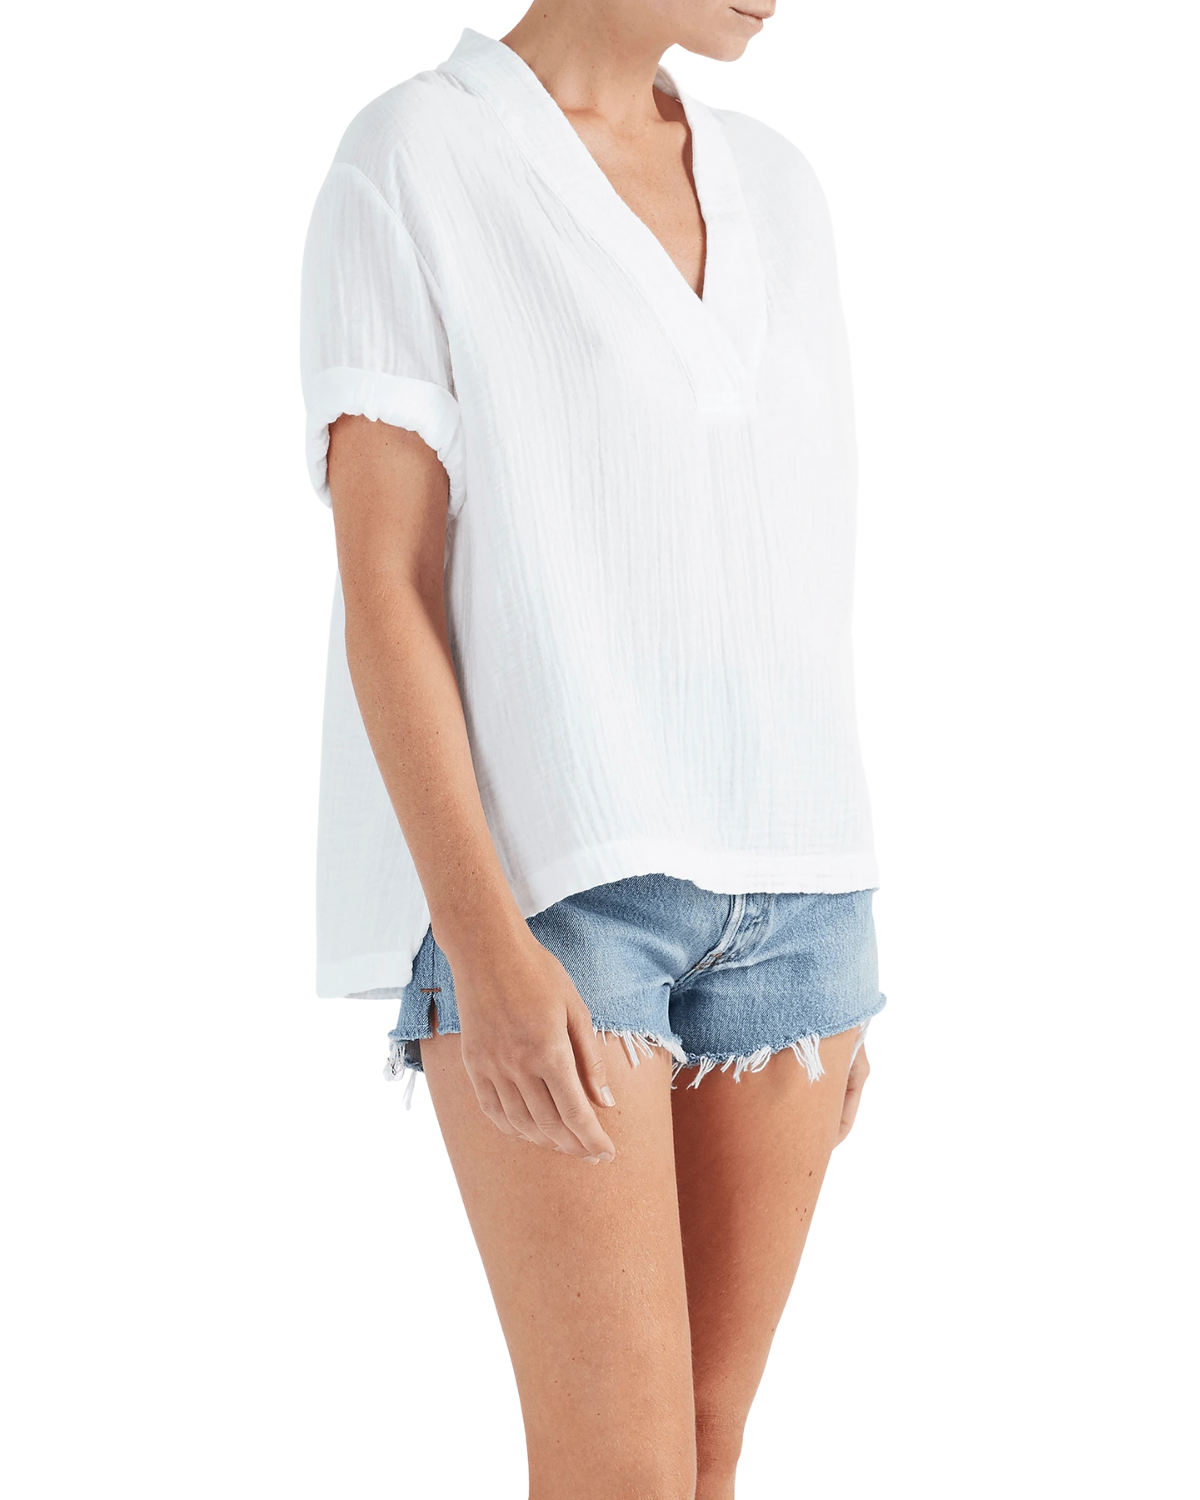 Avery Top - White